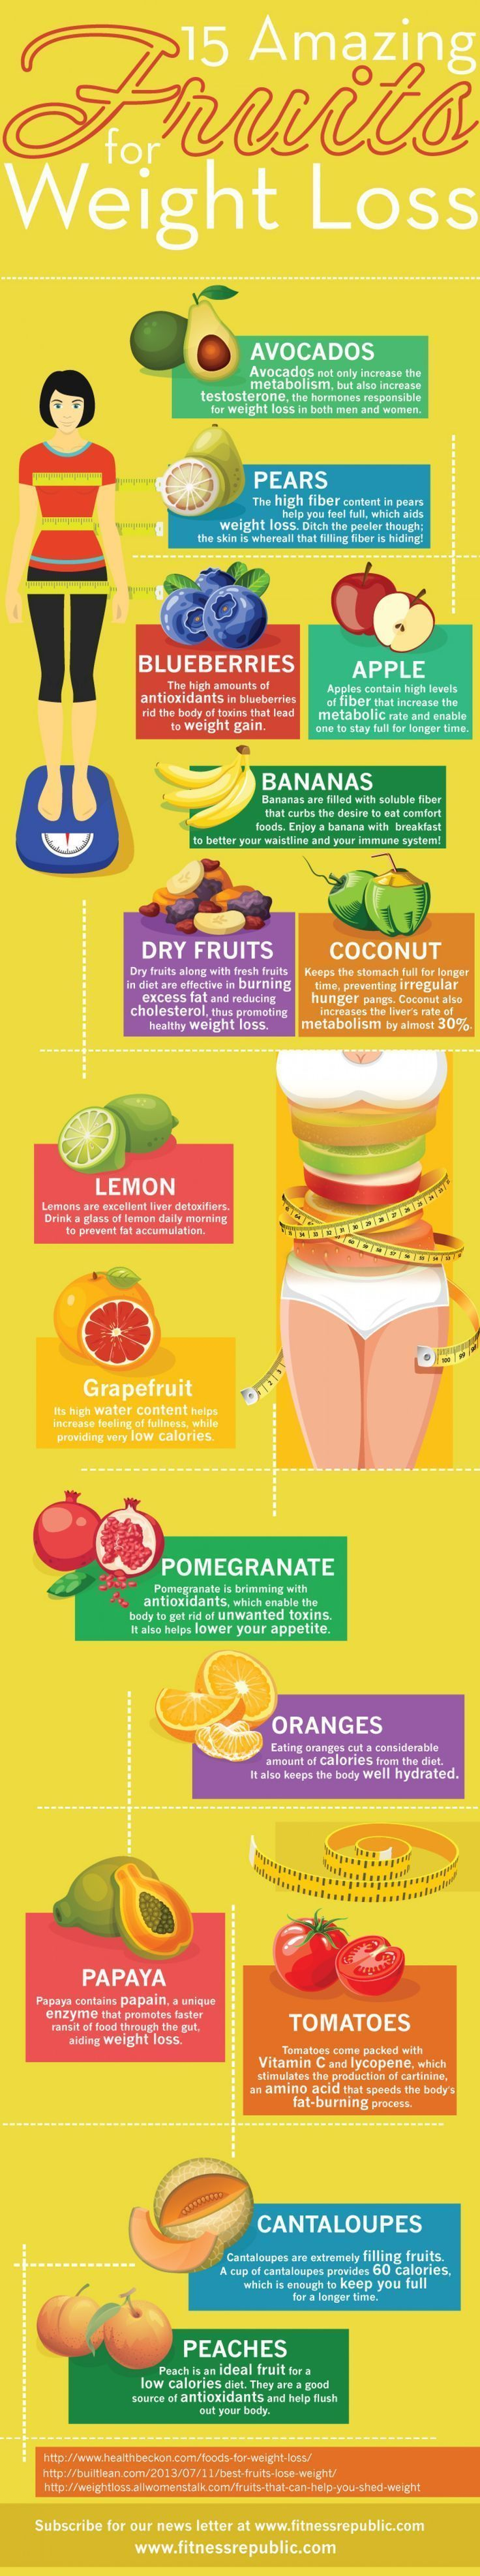 umami food combinations to lose weight